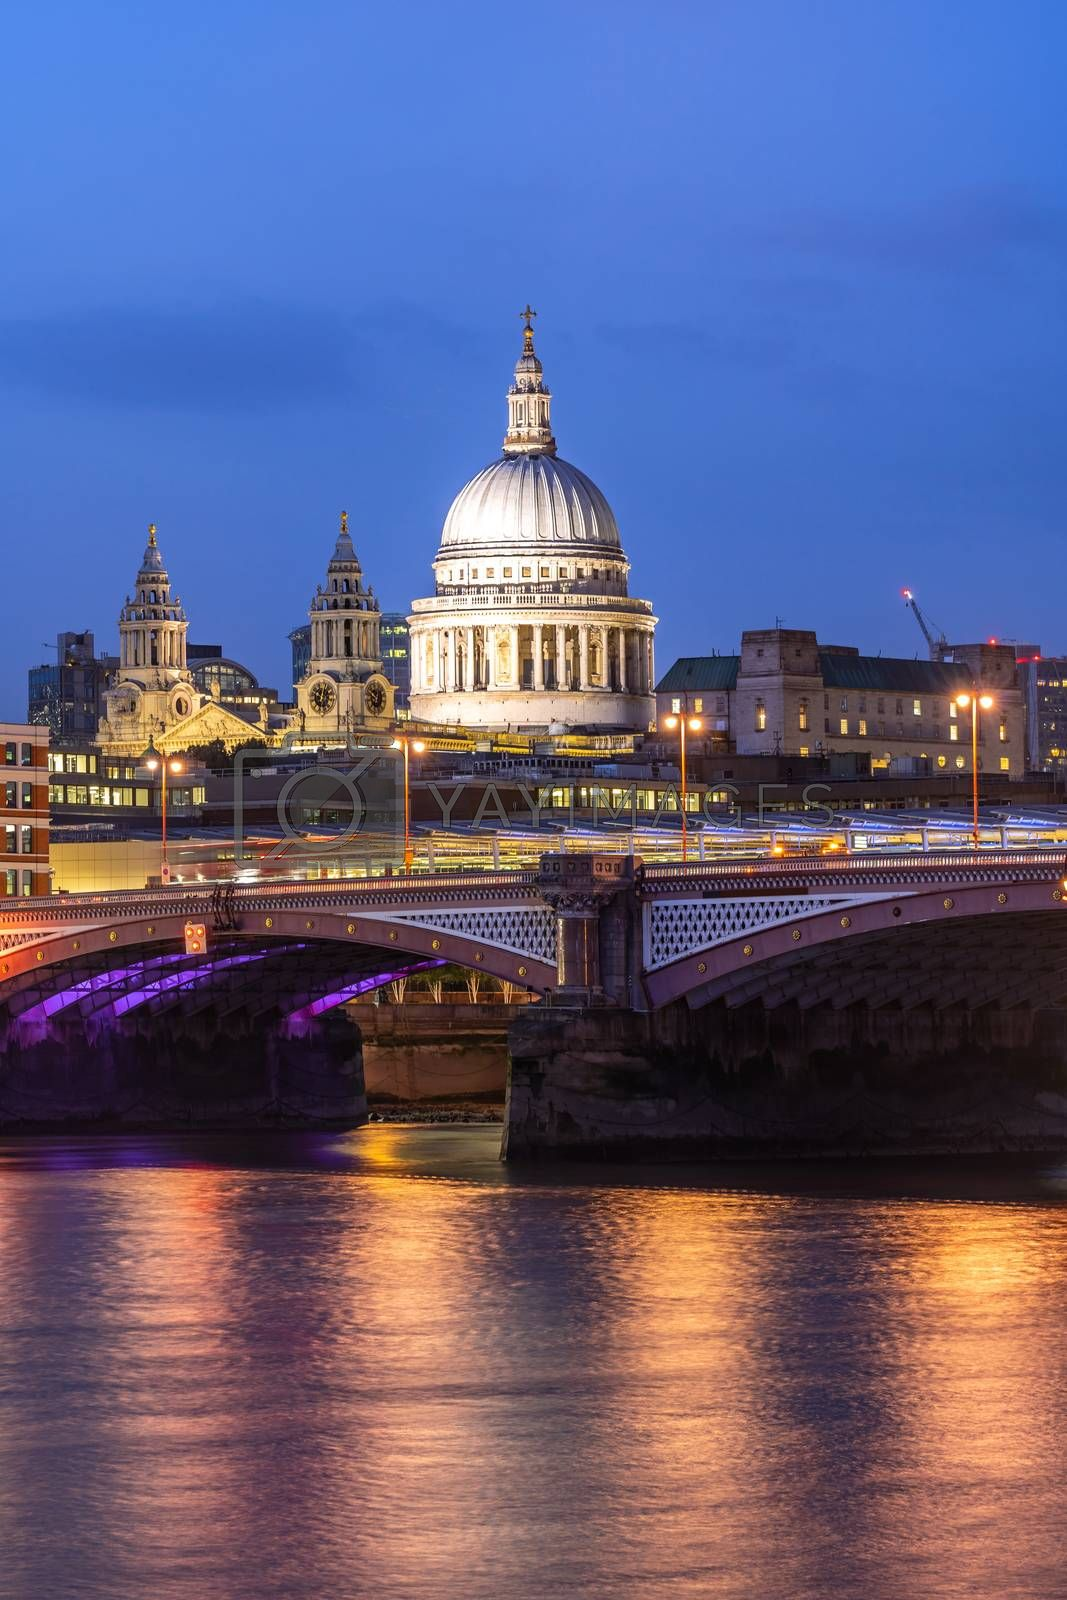 St paul cathedral with river thames sunset twilight in London UK.